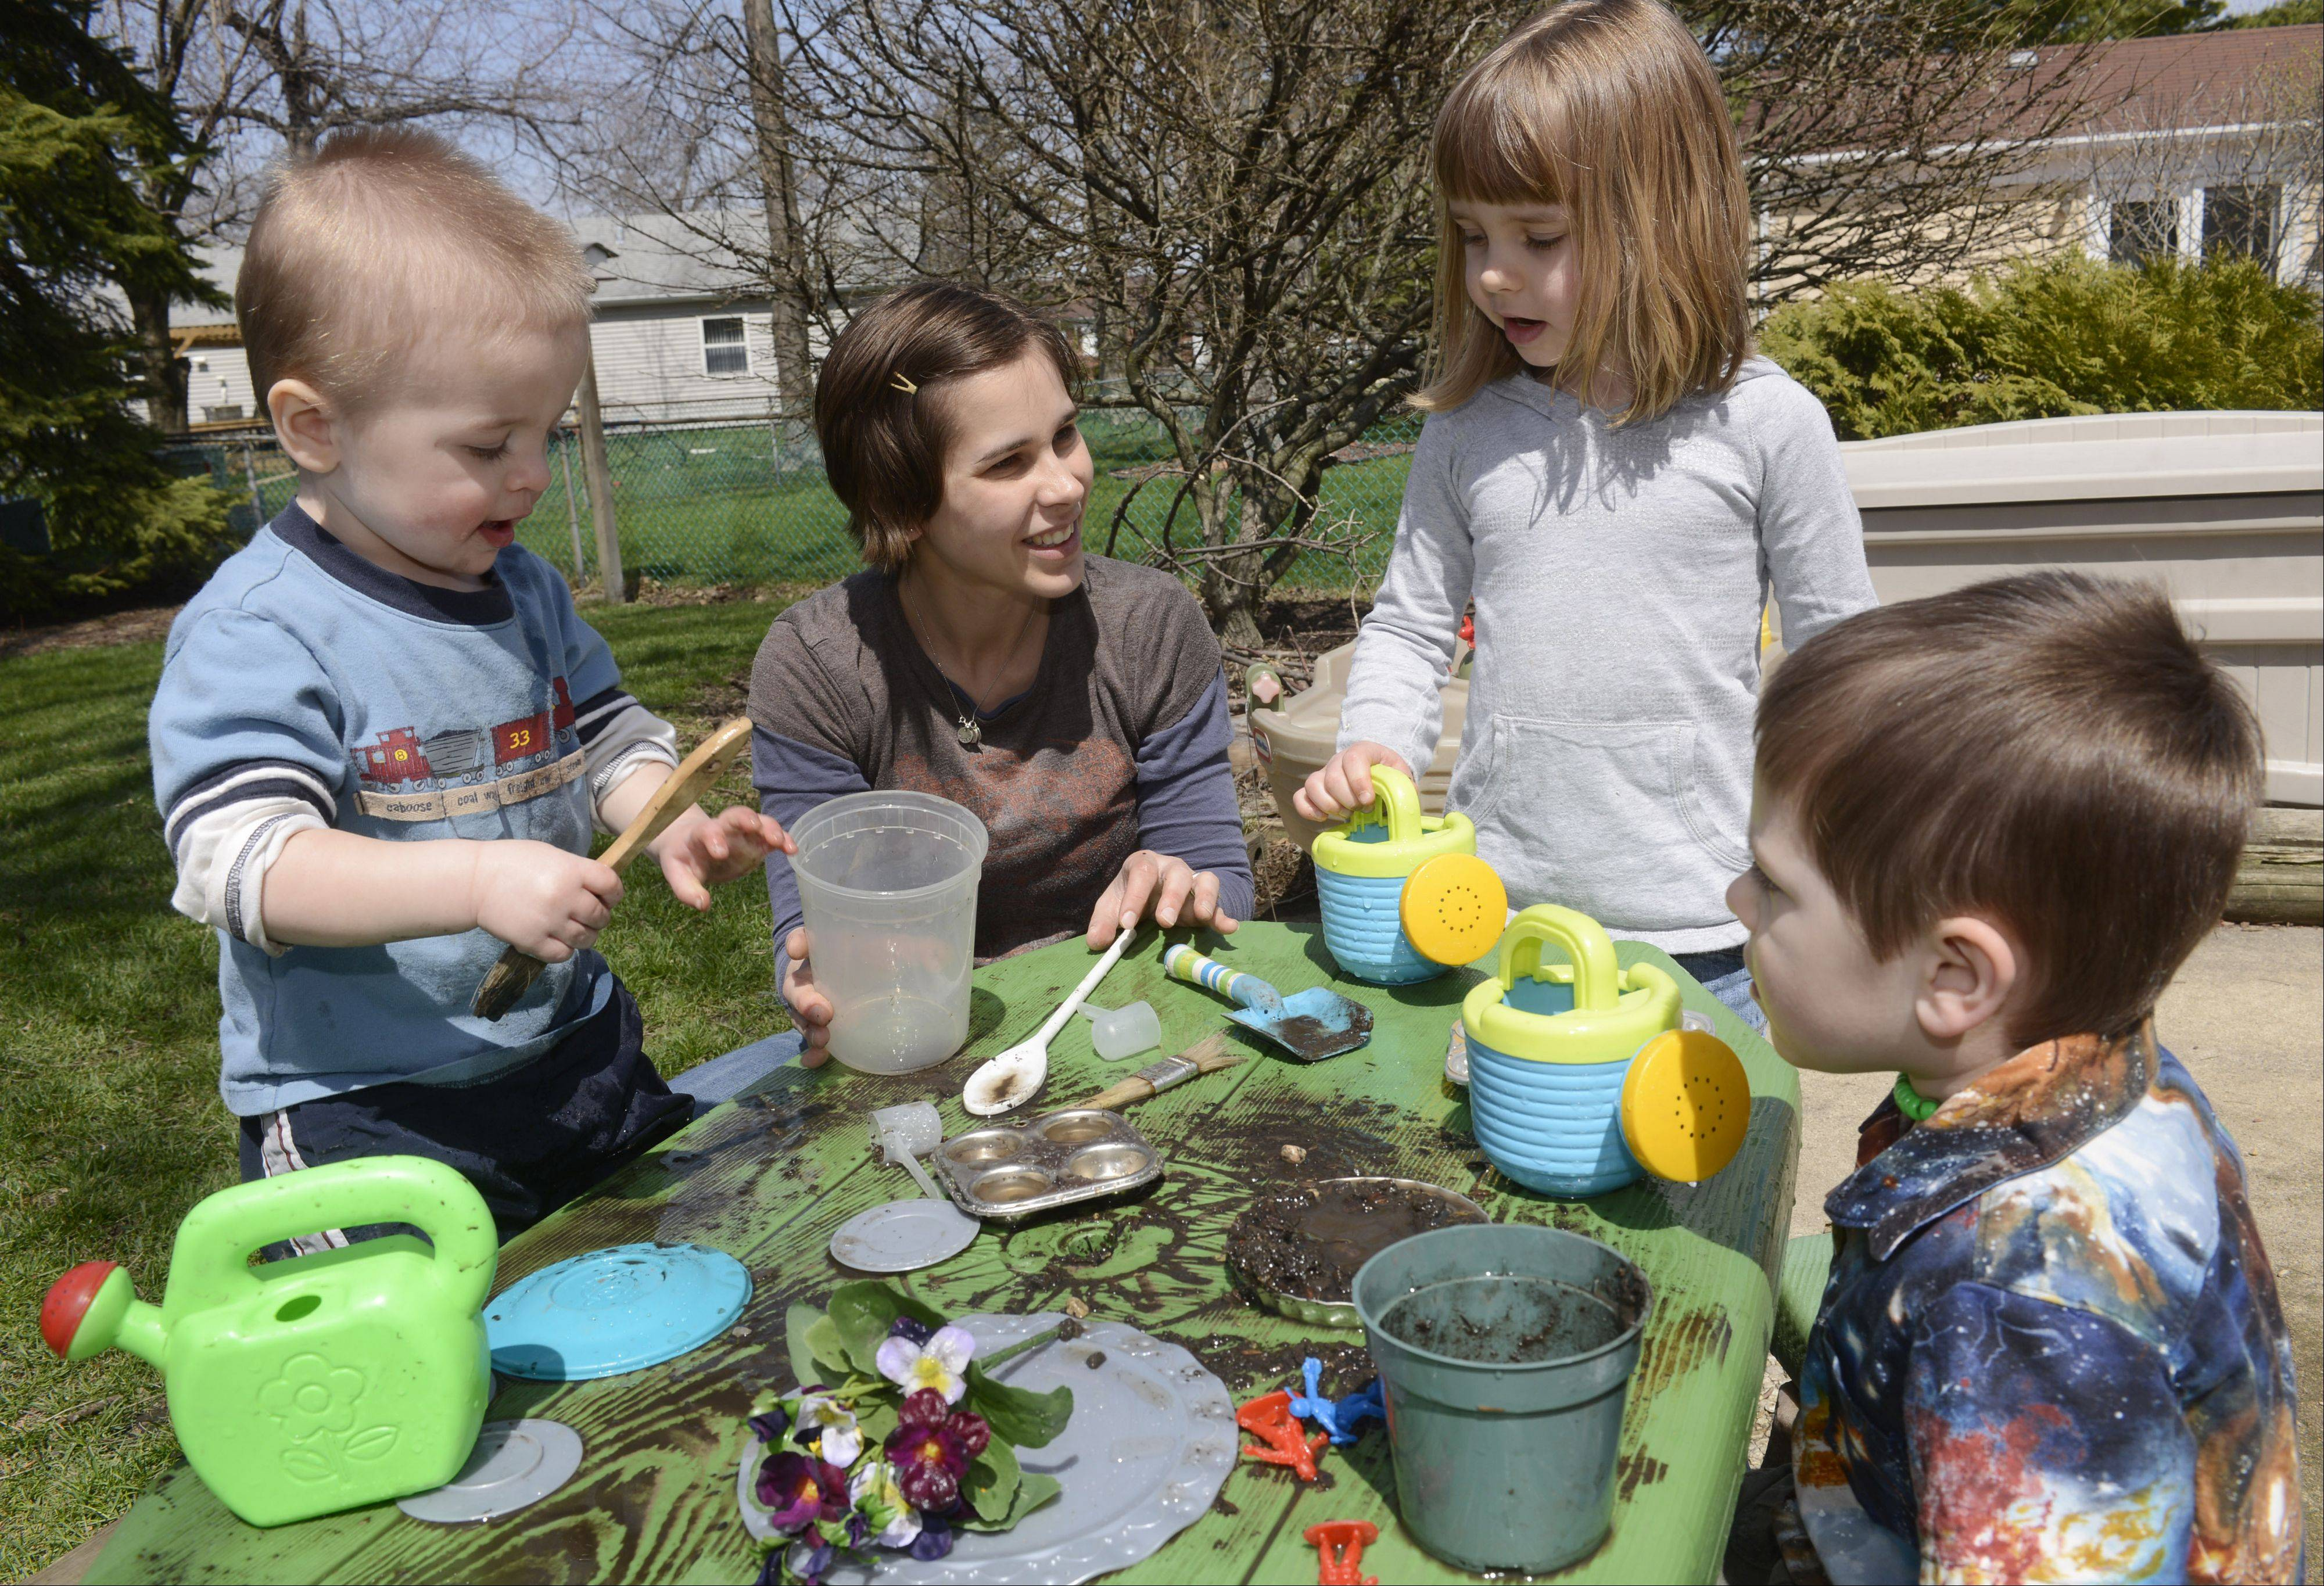 Left to right, Benjamin Anderson, 1, his mom, Becki, sister Lily, 4, and brother Justin, 3, make mud pies in the back yard of their Schaumburg home.